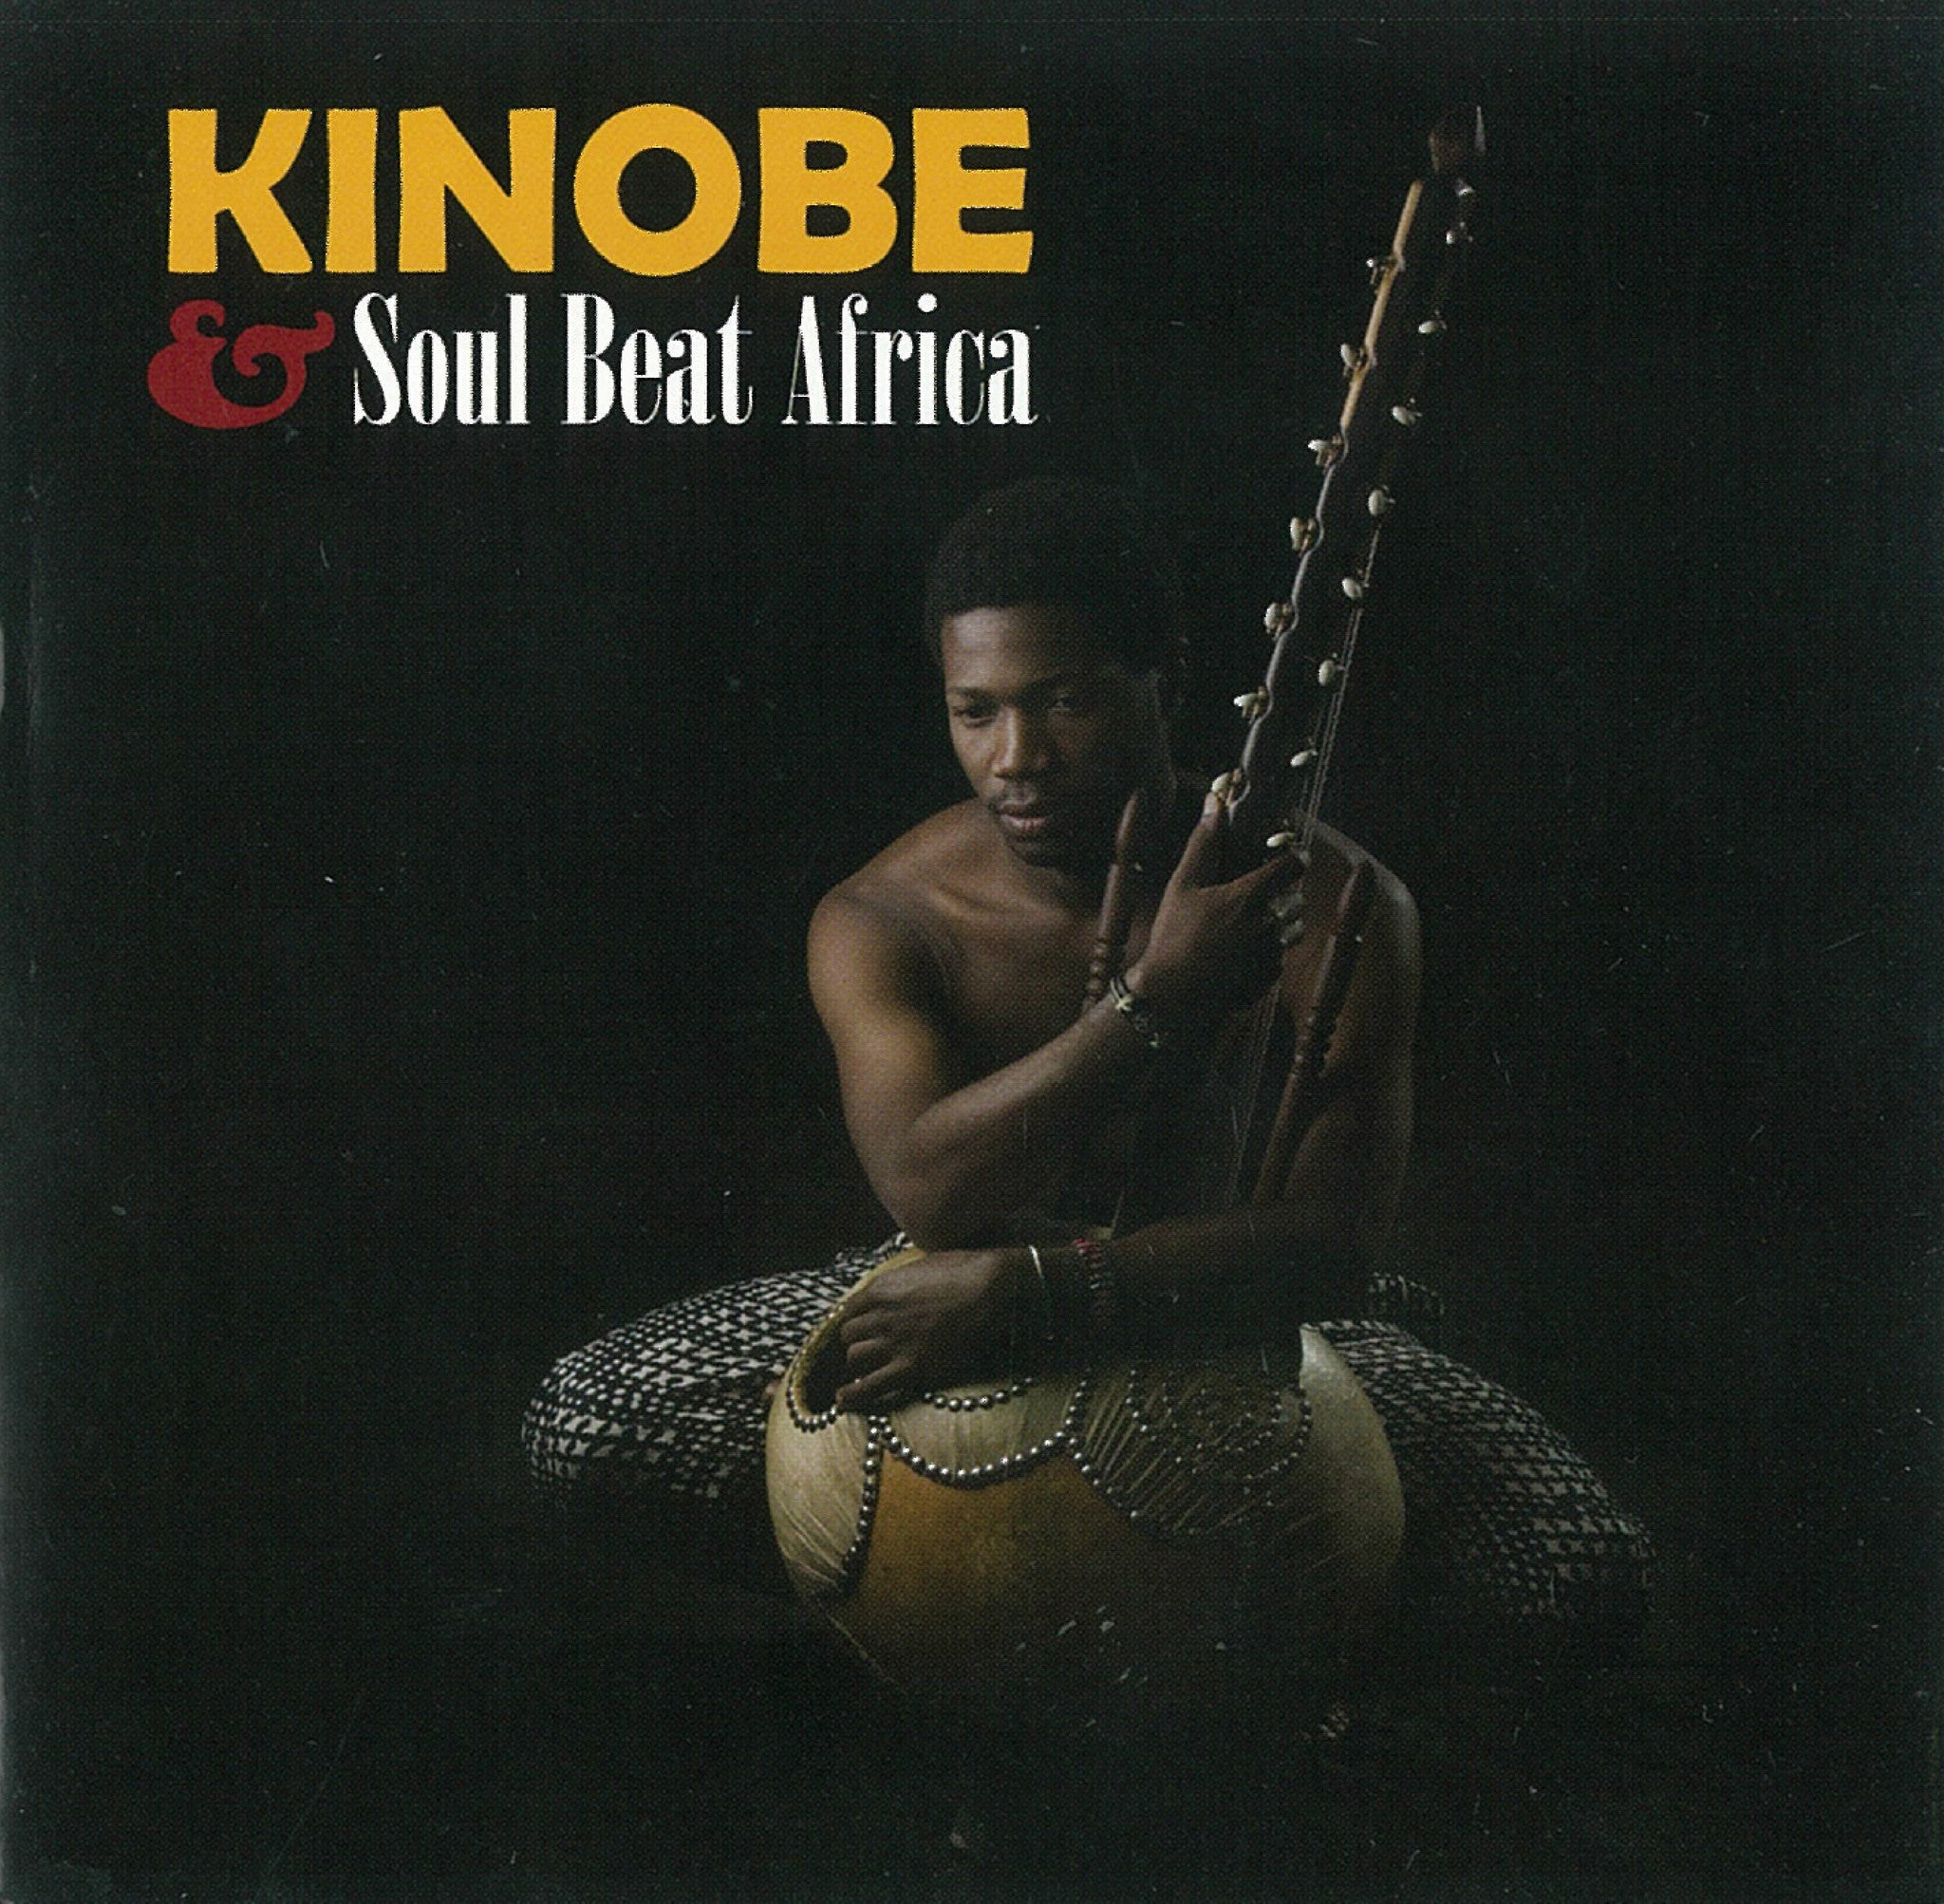 Kinobe & Soul Beat Africa DOWNLOAD ONLY MCM-4011